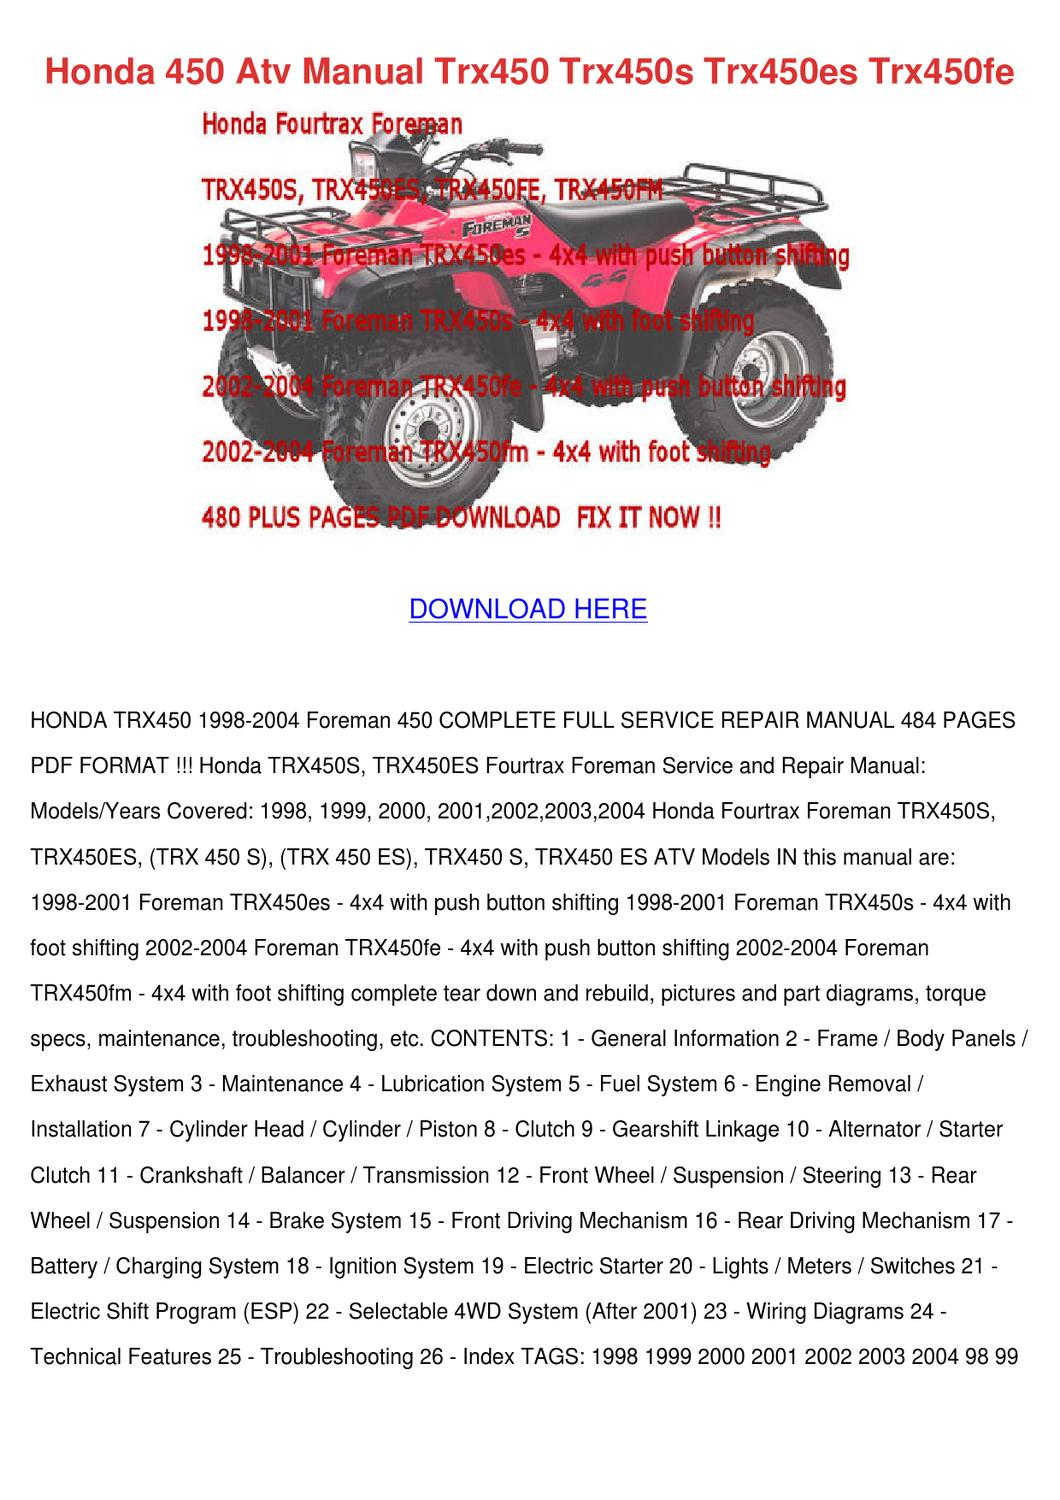 Honda 450 Atv Manual Trx450 Trx450s Trx450es by Magdalen Groholski - issuu